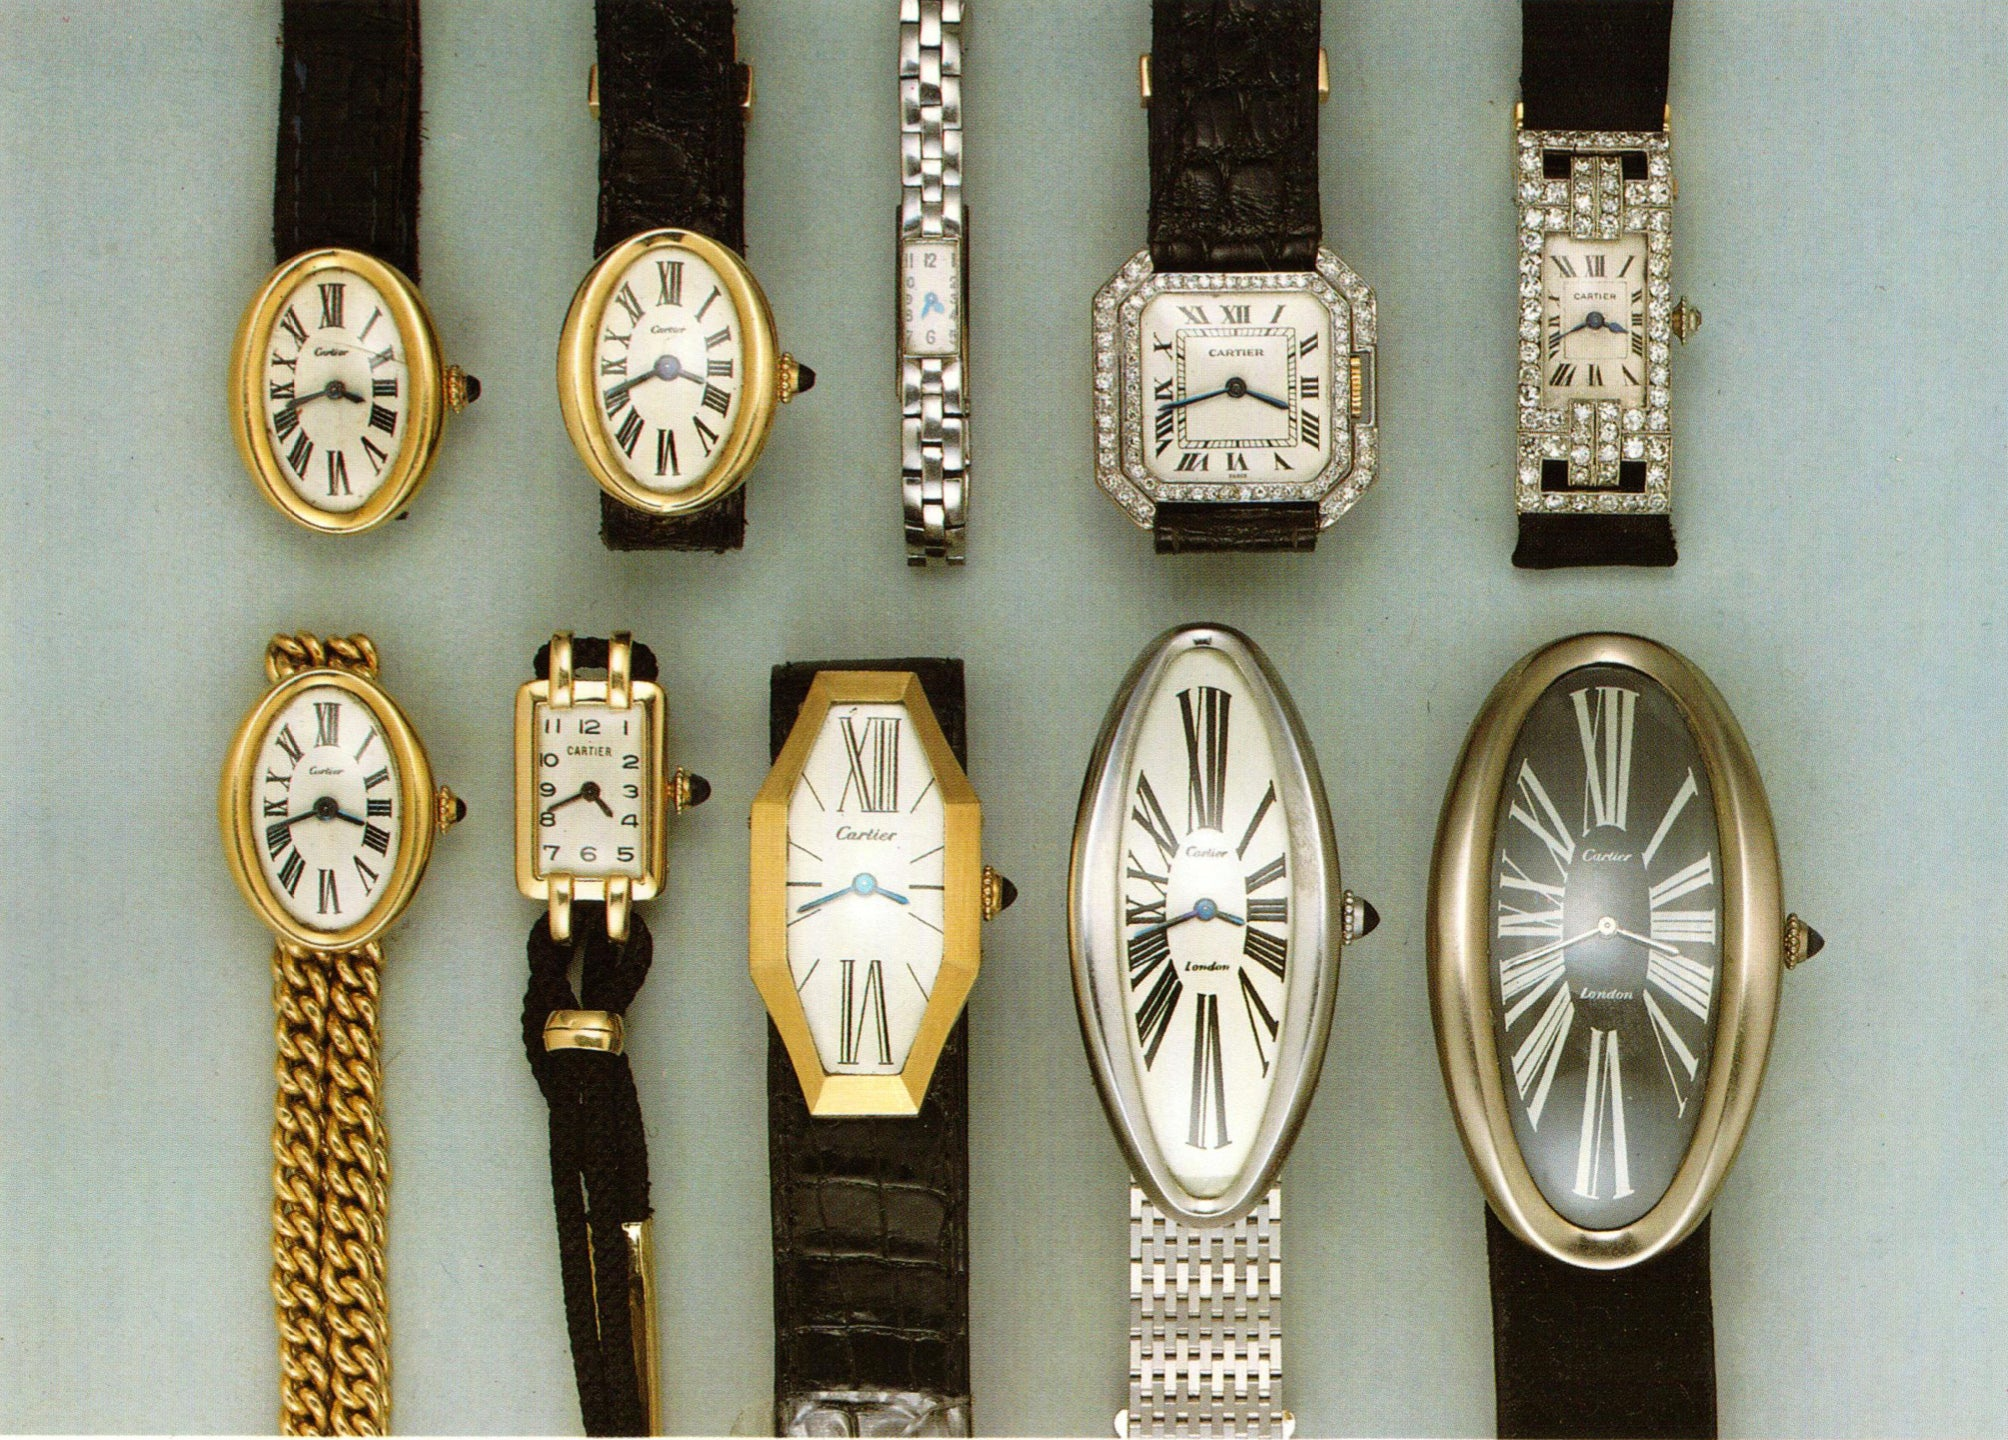 Auction catalogue of Cartier watches in The Early Days of Vintage Wristwatch Collecting for A Collected Man London